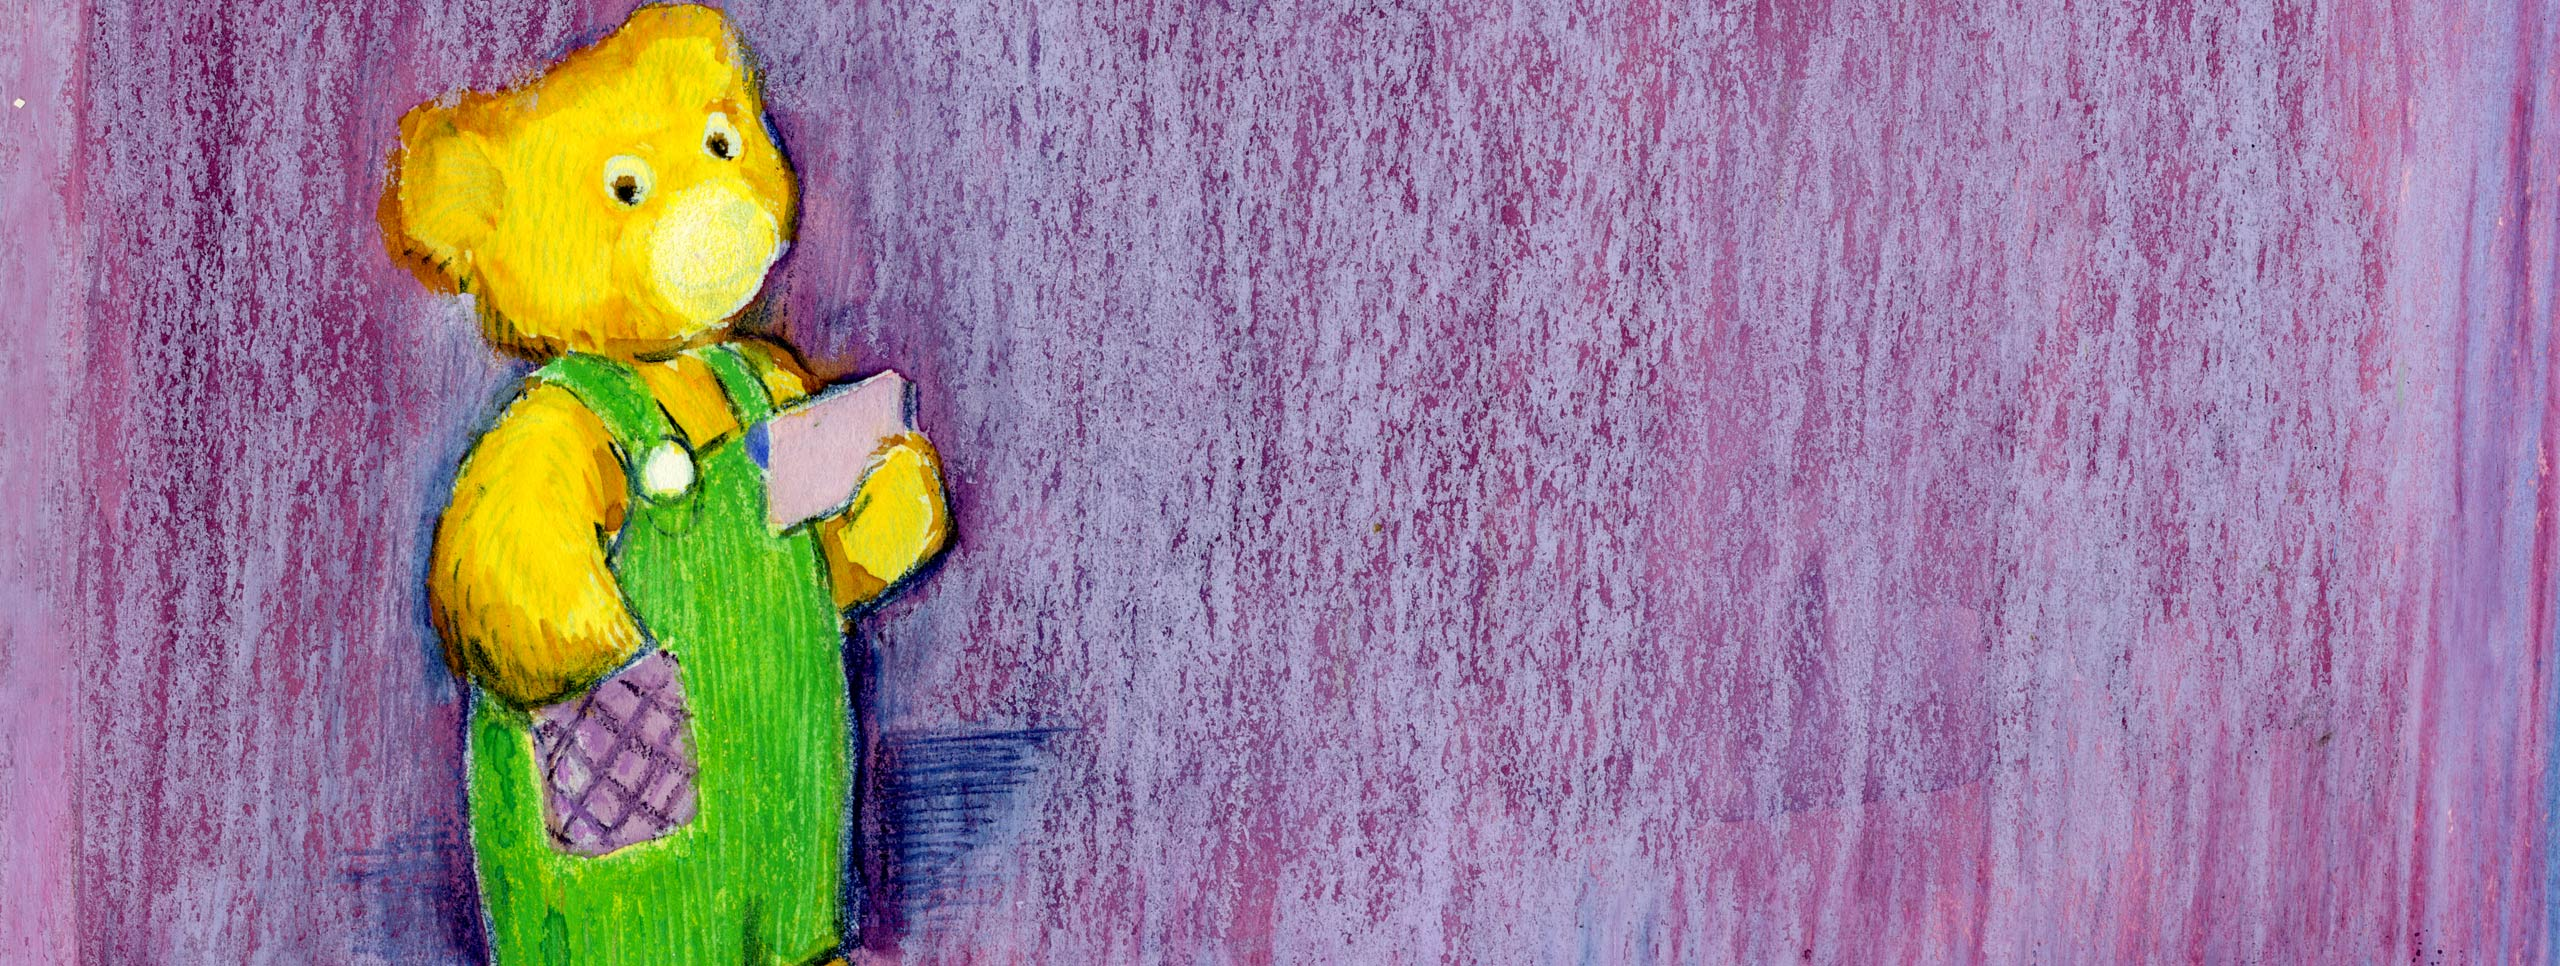 Purple backdrop with a gold teddy bear. The bear is wearing green overalls with a purple pocket and is holding a notecard